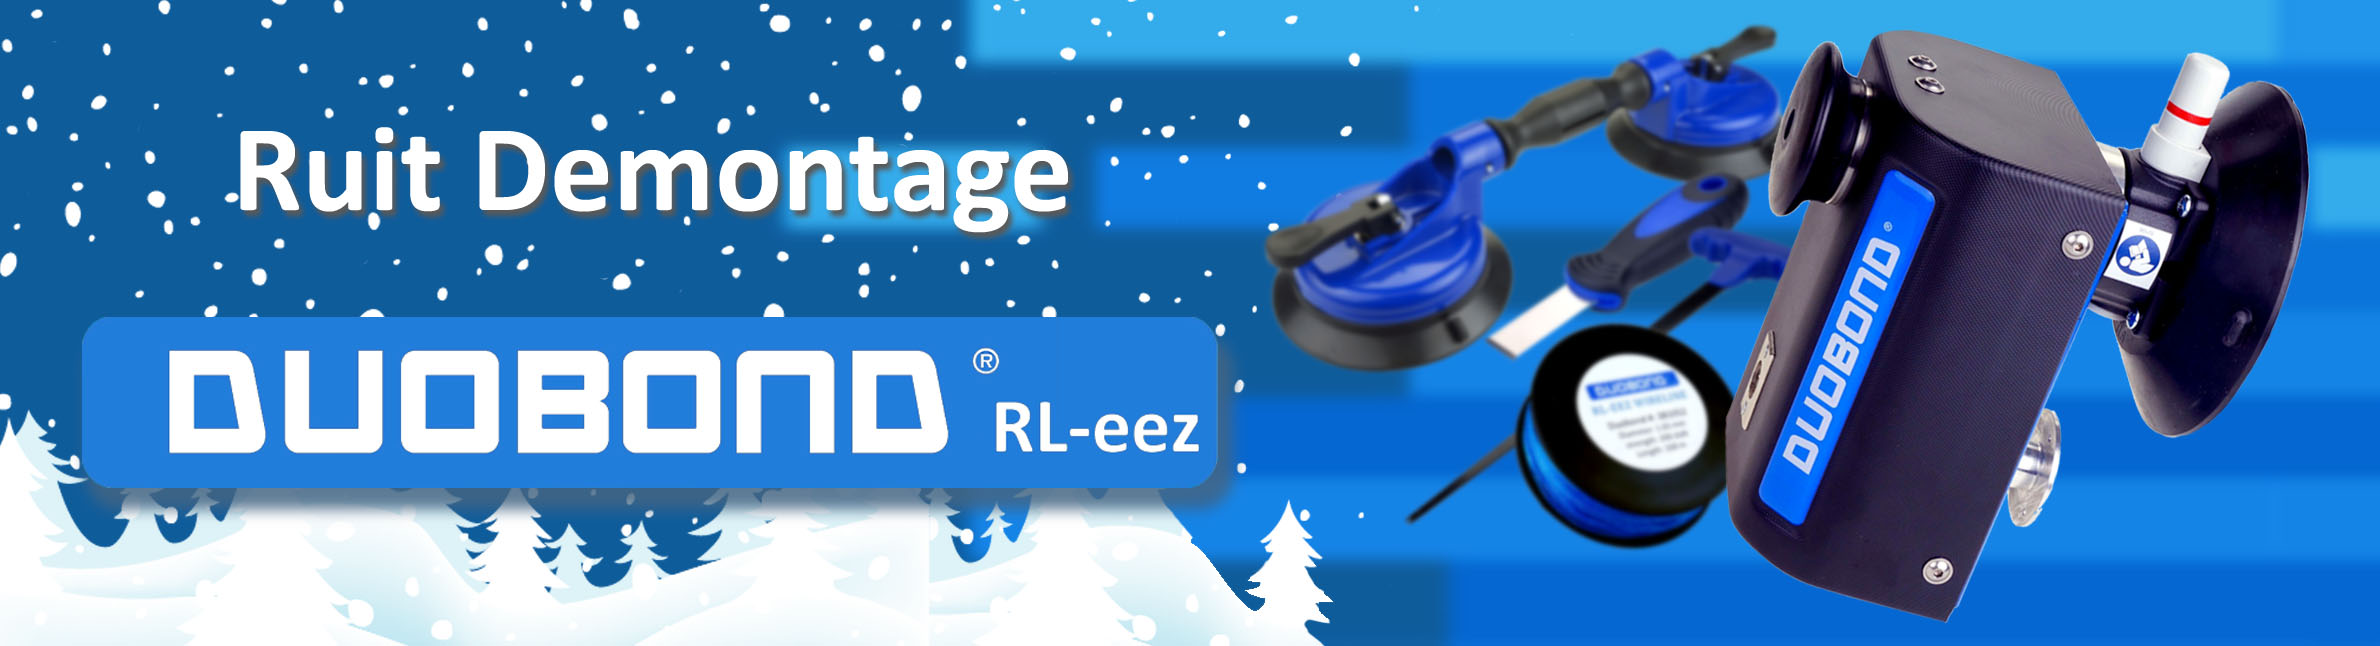 banner ruit demontage winter editie